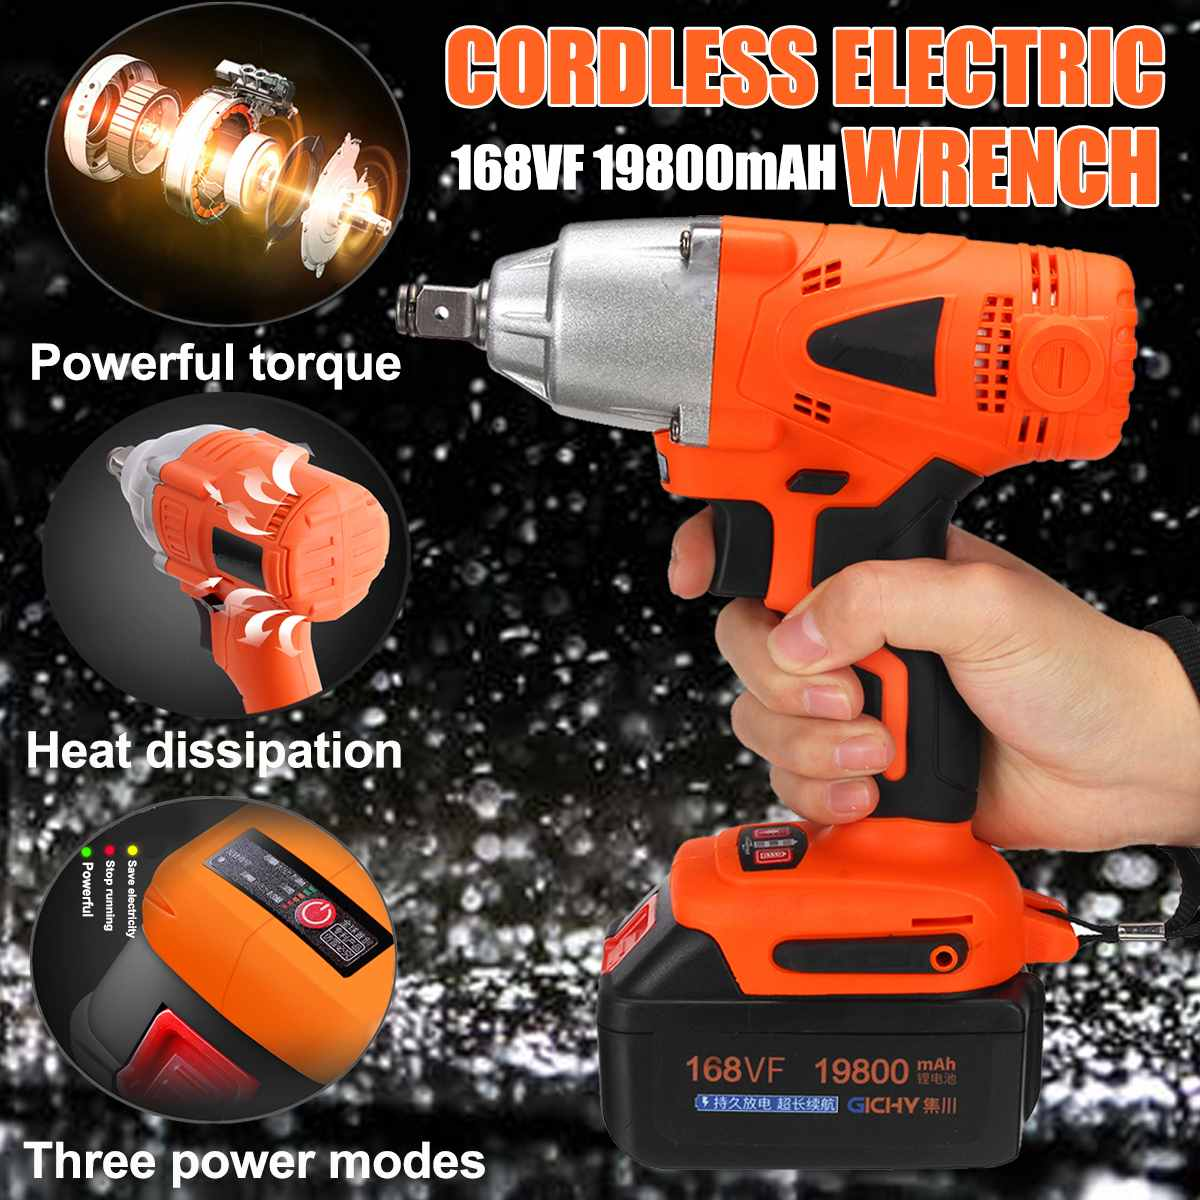 168VF 19800mah 300NM Electric Brushless Cordless Wrench Impact Socket Rechargeable Battery Wrench Hand Drill Installation Tools168VF 19800mah 300NM Electric Brushless Cordless Wrench Impact Socket Rechargeable Battery Wrench Hand Drill Installation Tools